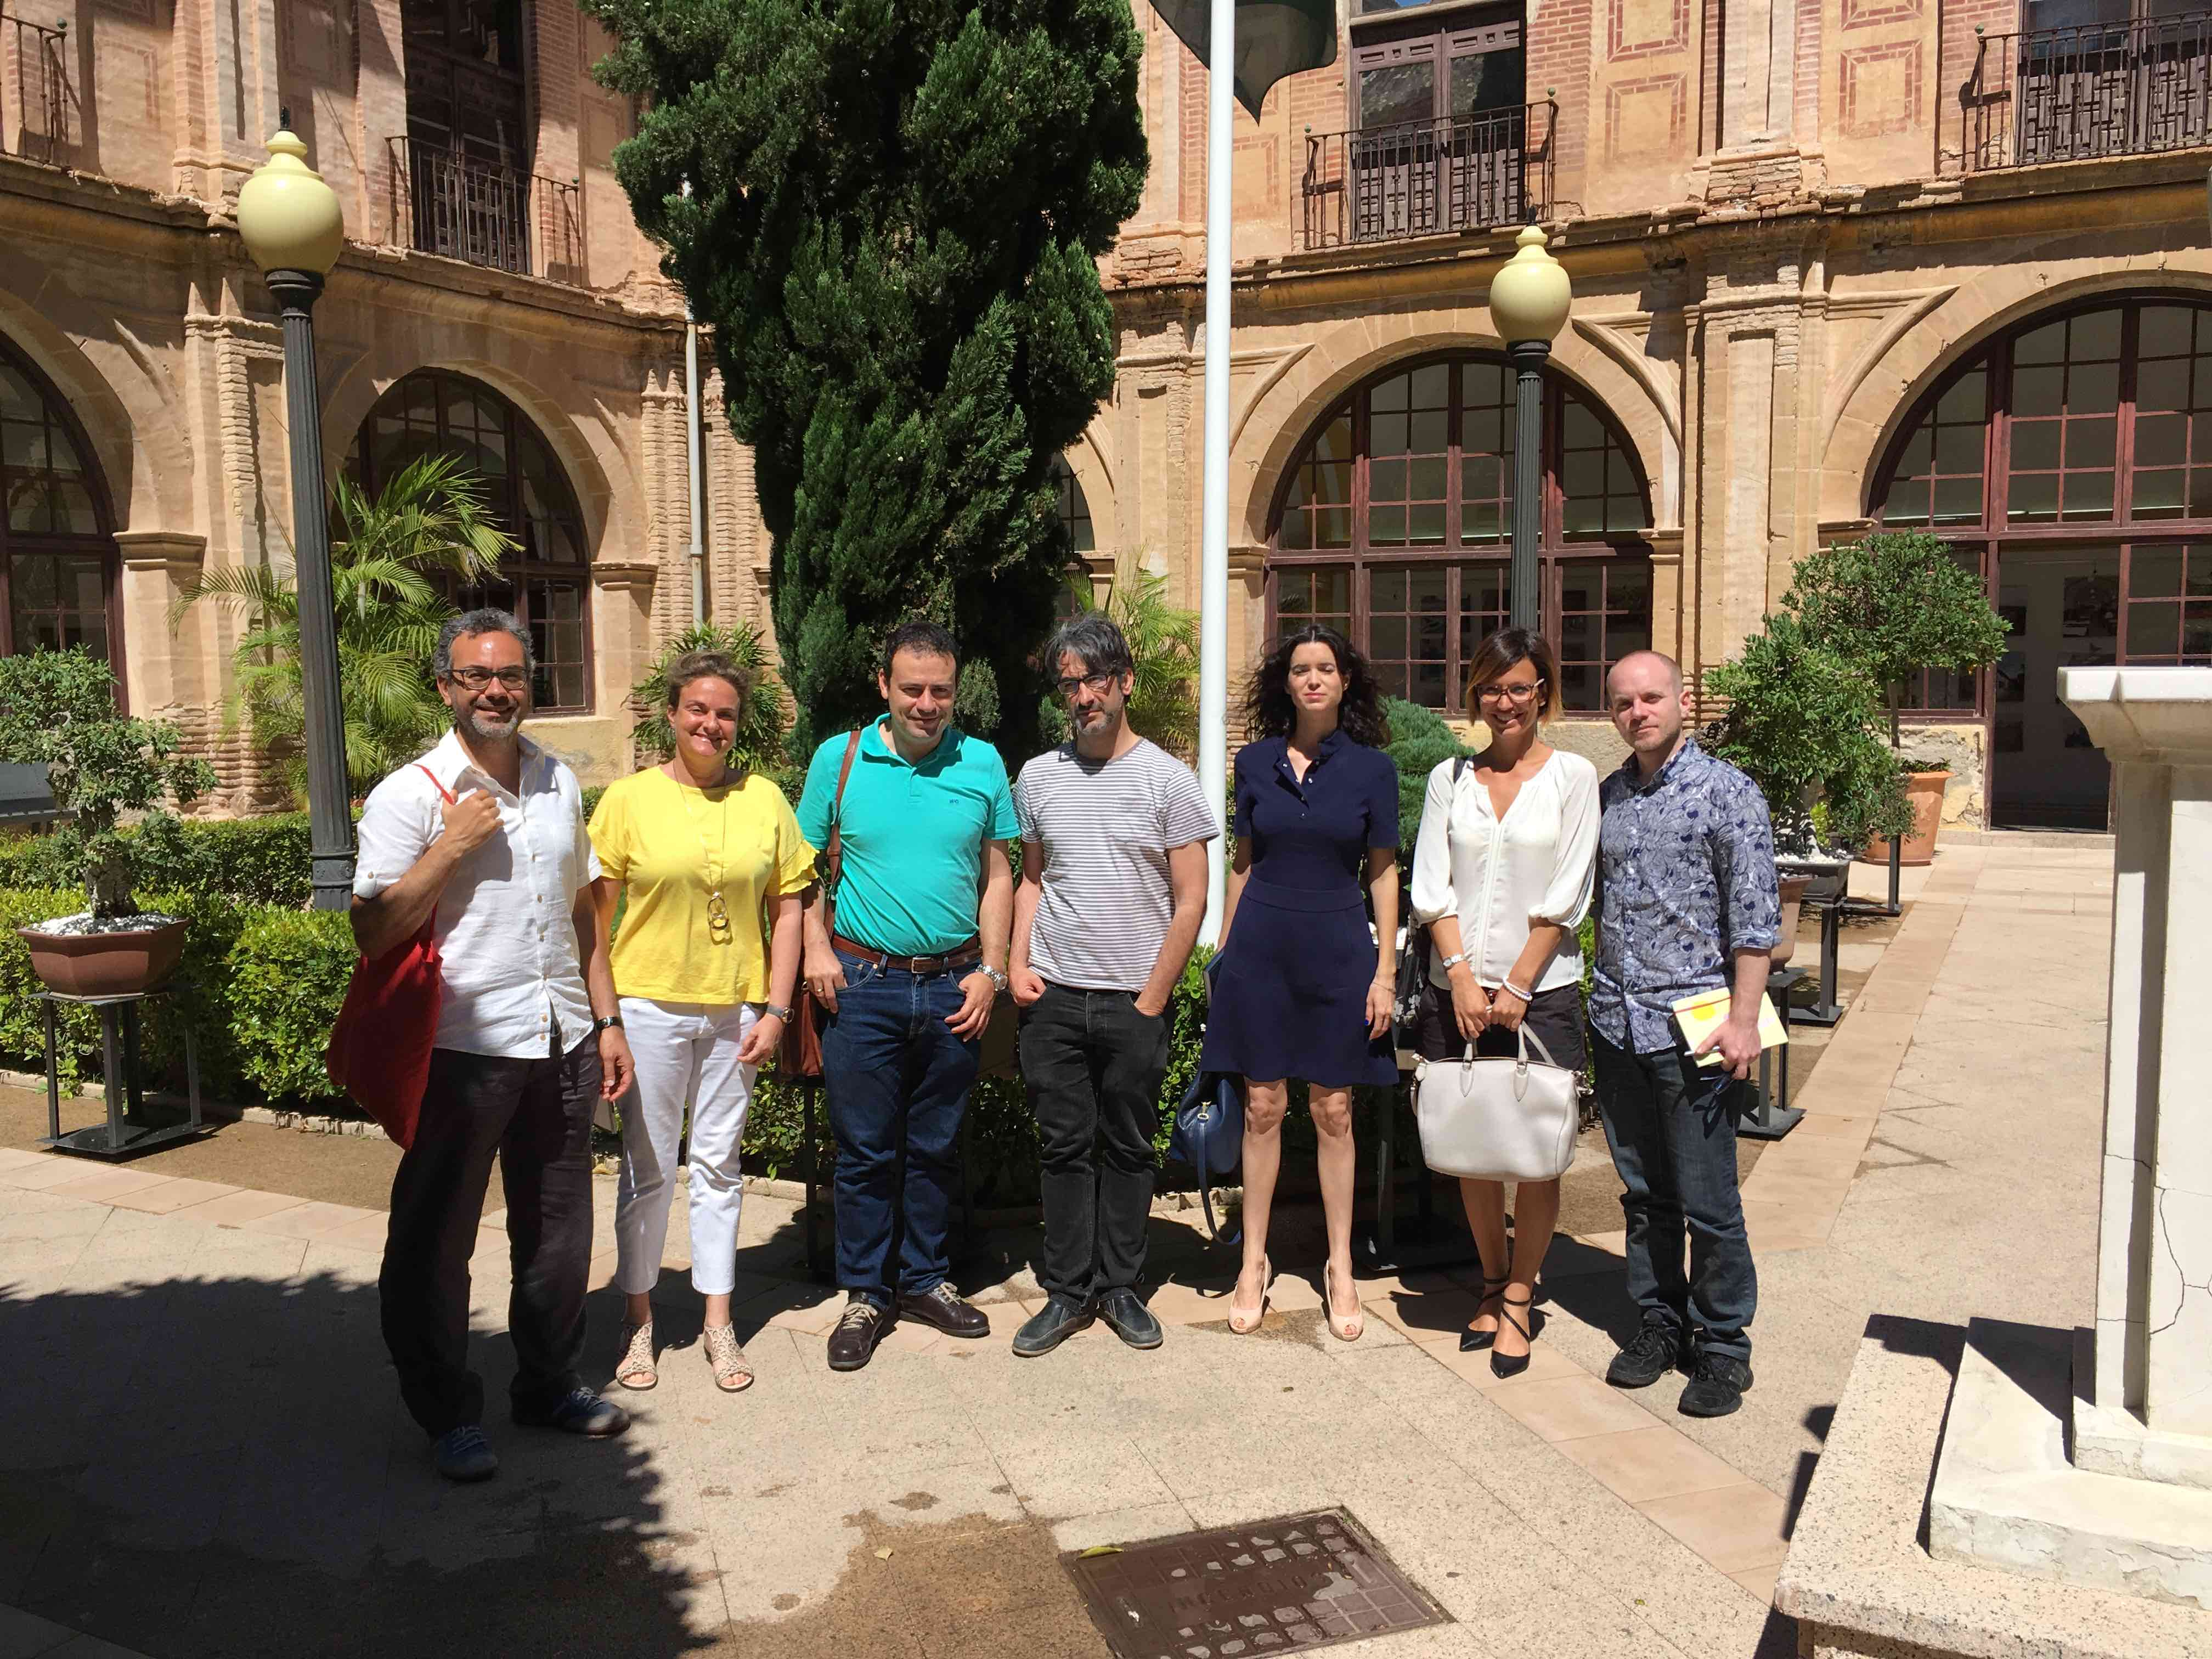 ALICE at UCAM in Murcia, Spain